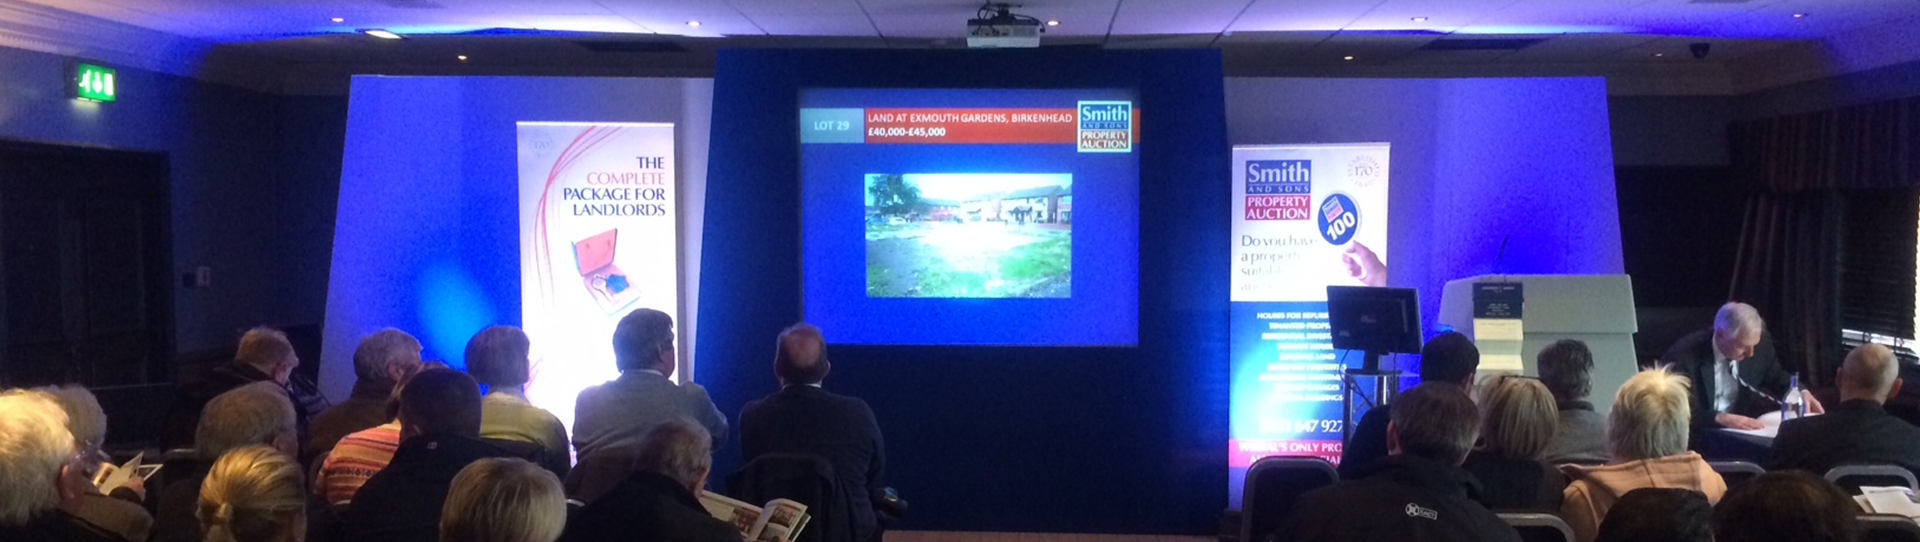 Conference Setup in Wirral, Merseyside